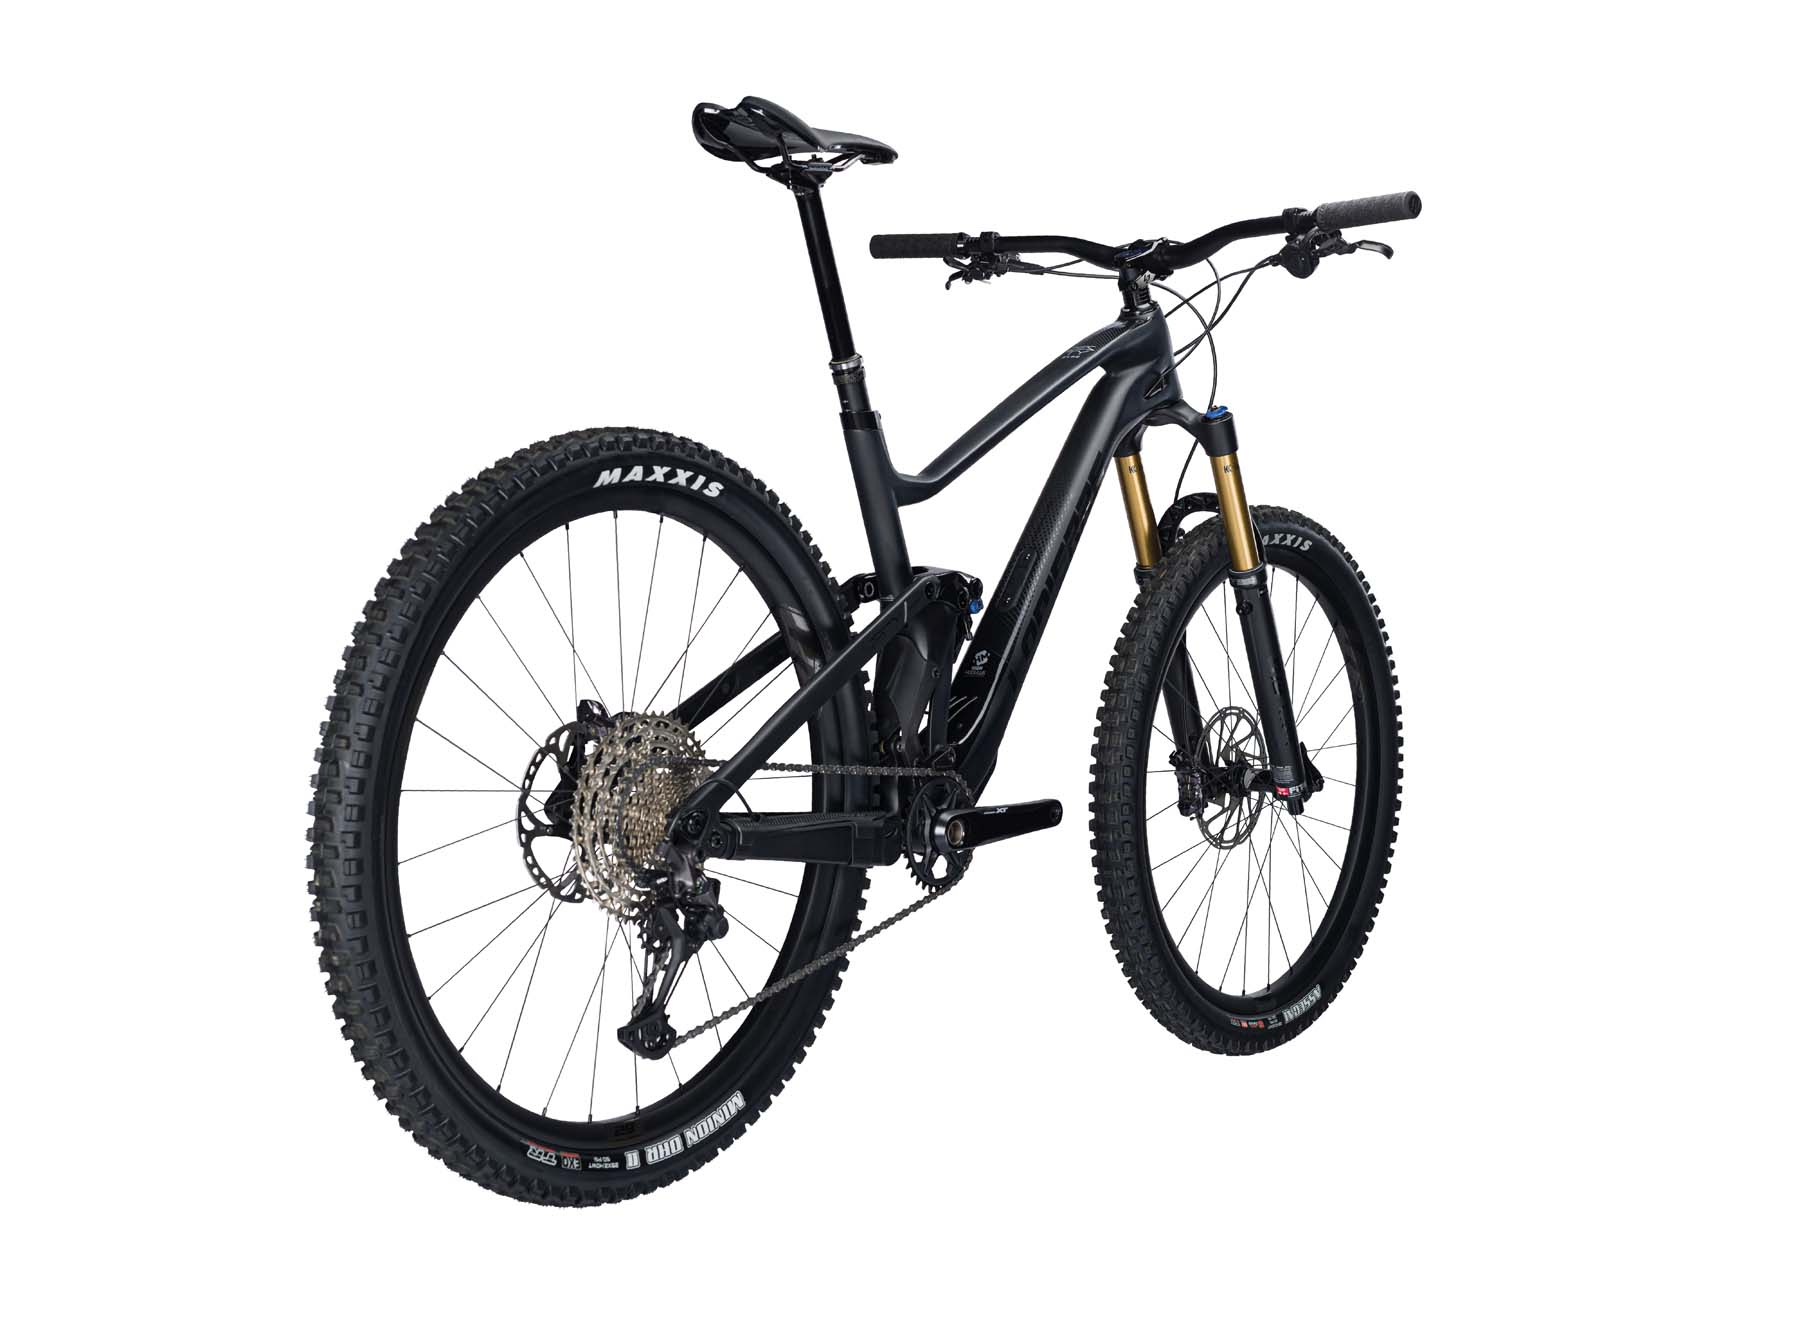 Lapierre Zesty AM CF 9.9 2021 All-Mountain Bike 2